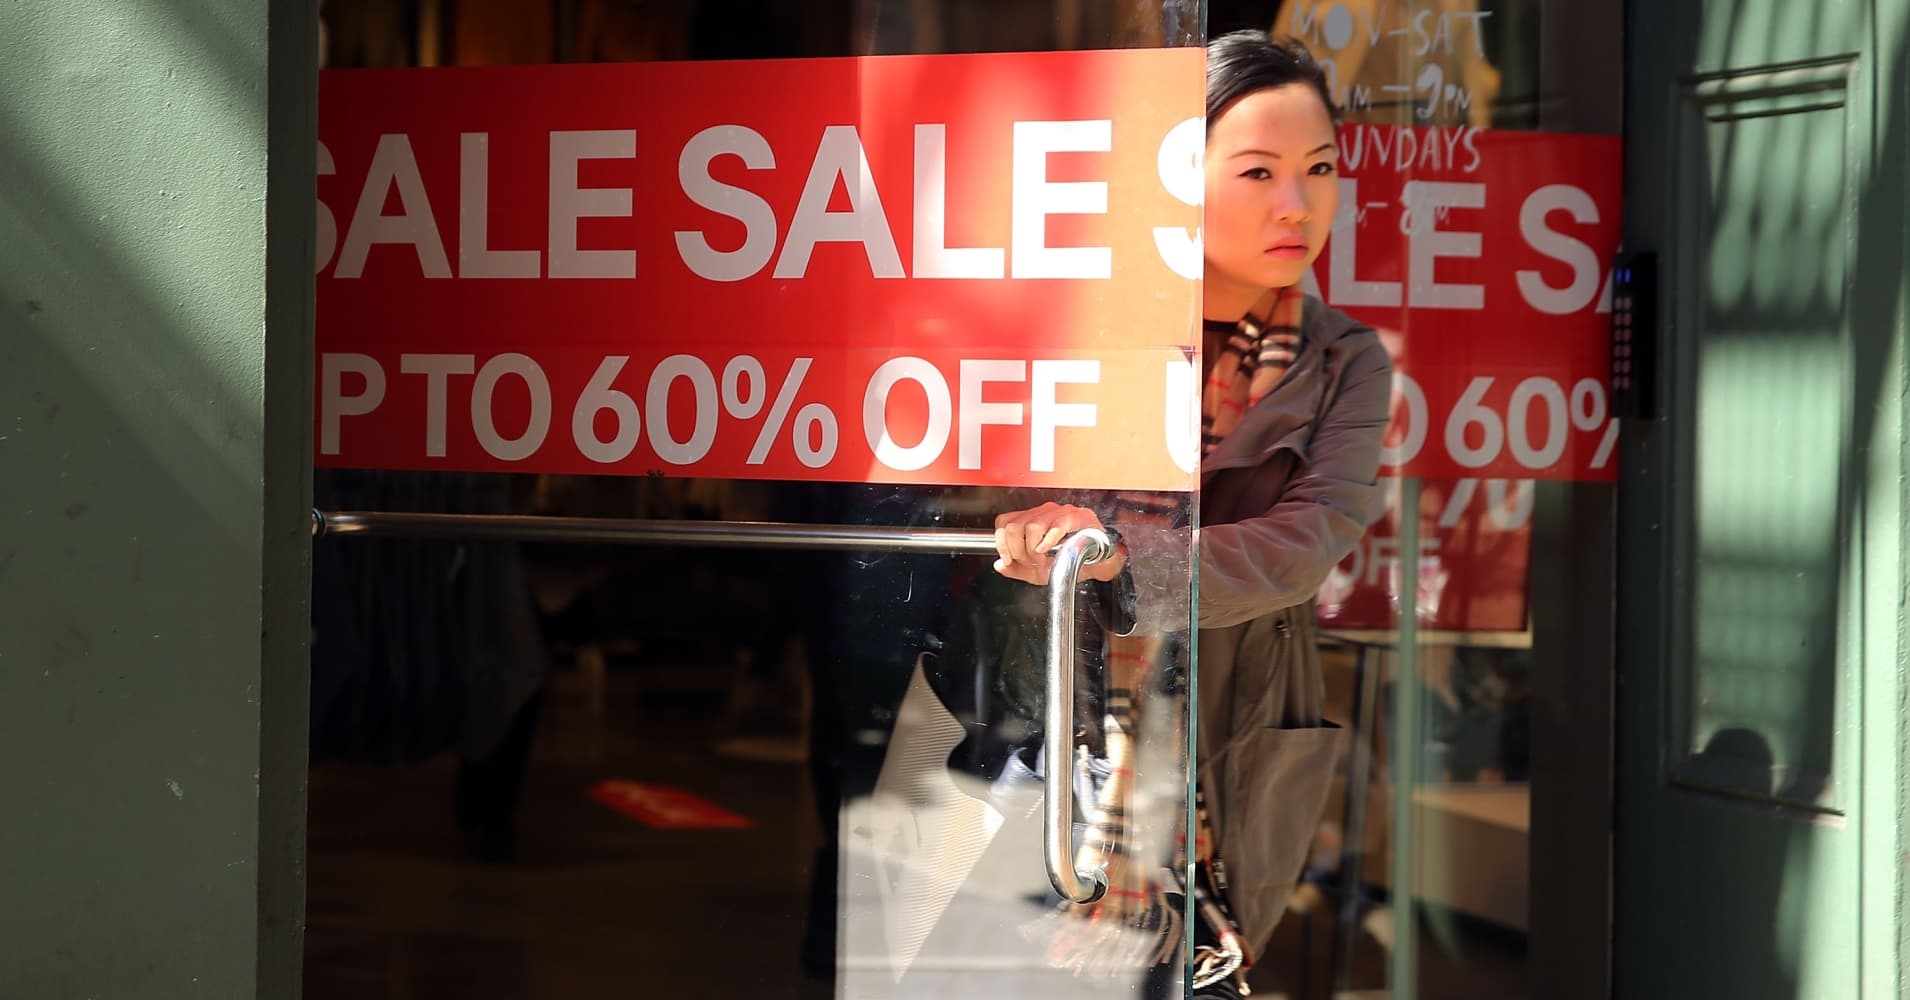 Performance of retail stocks is a perfect example of passive investing perils, says strategist